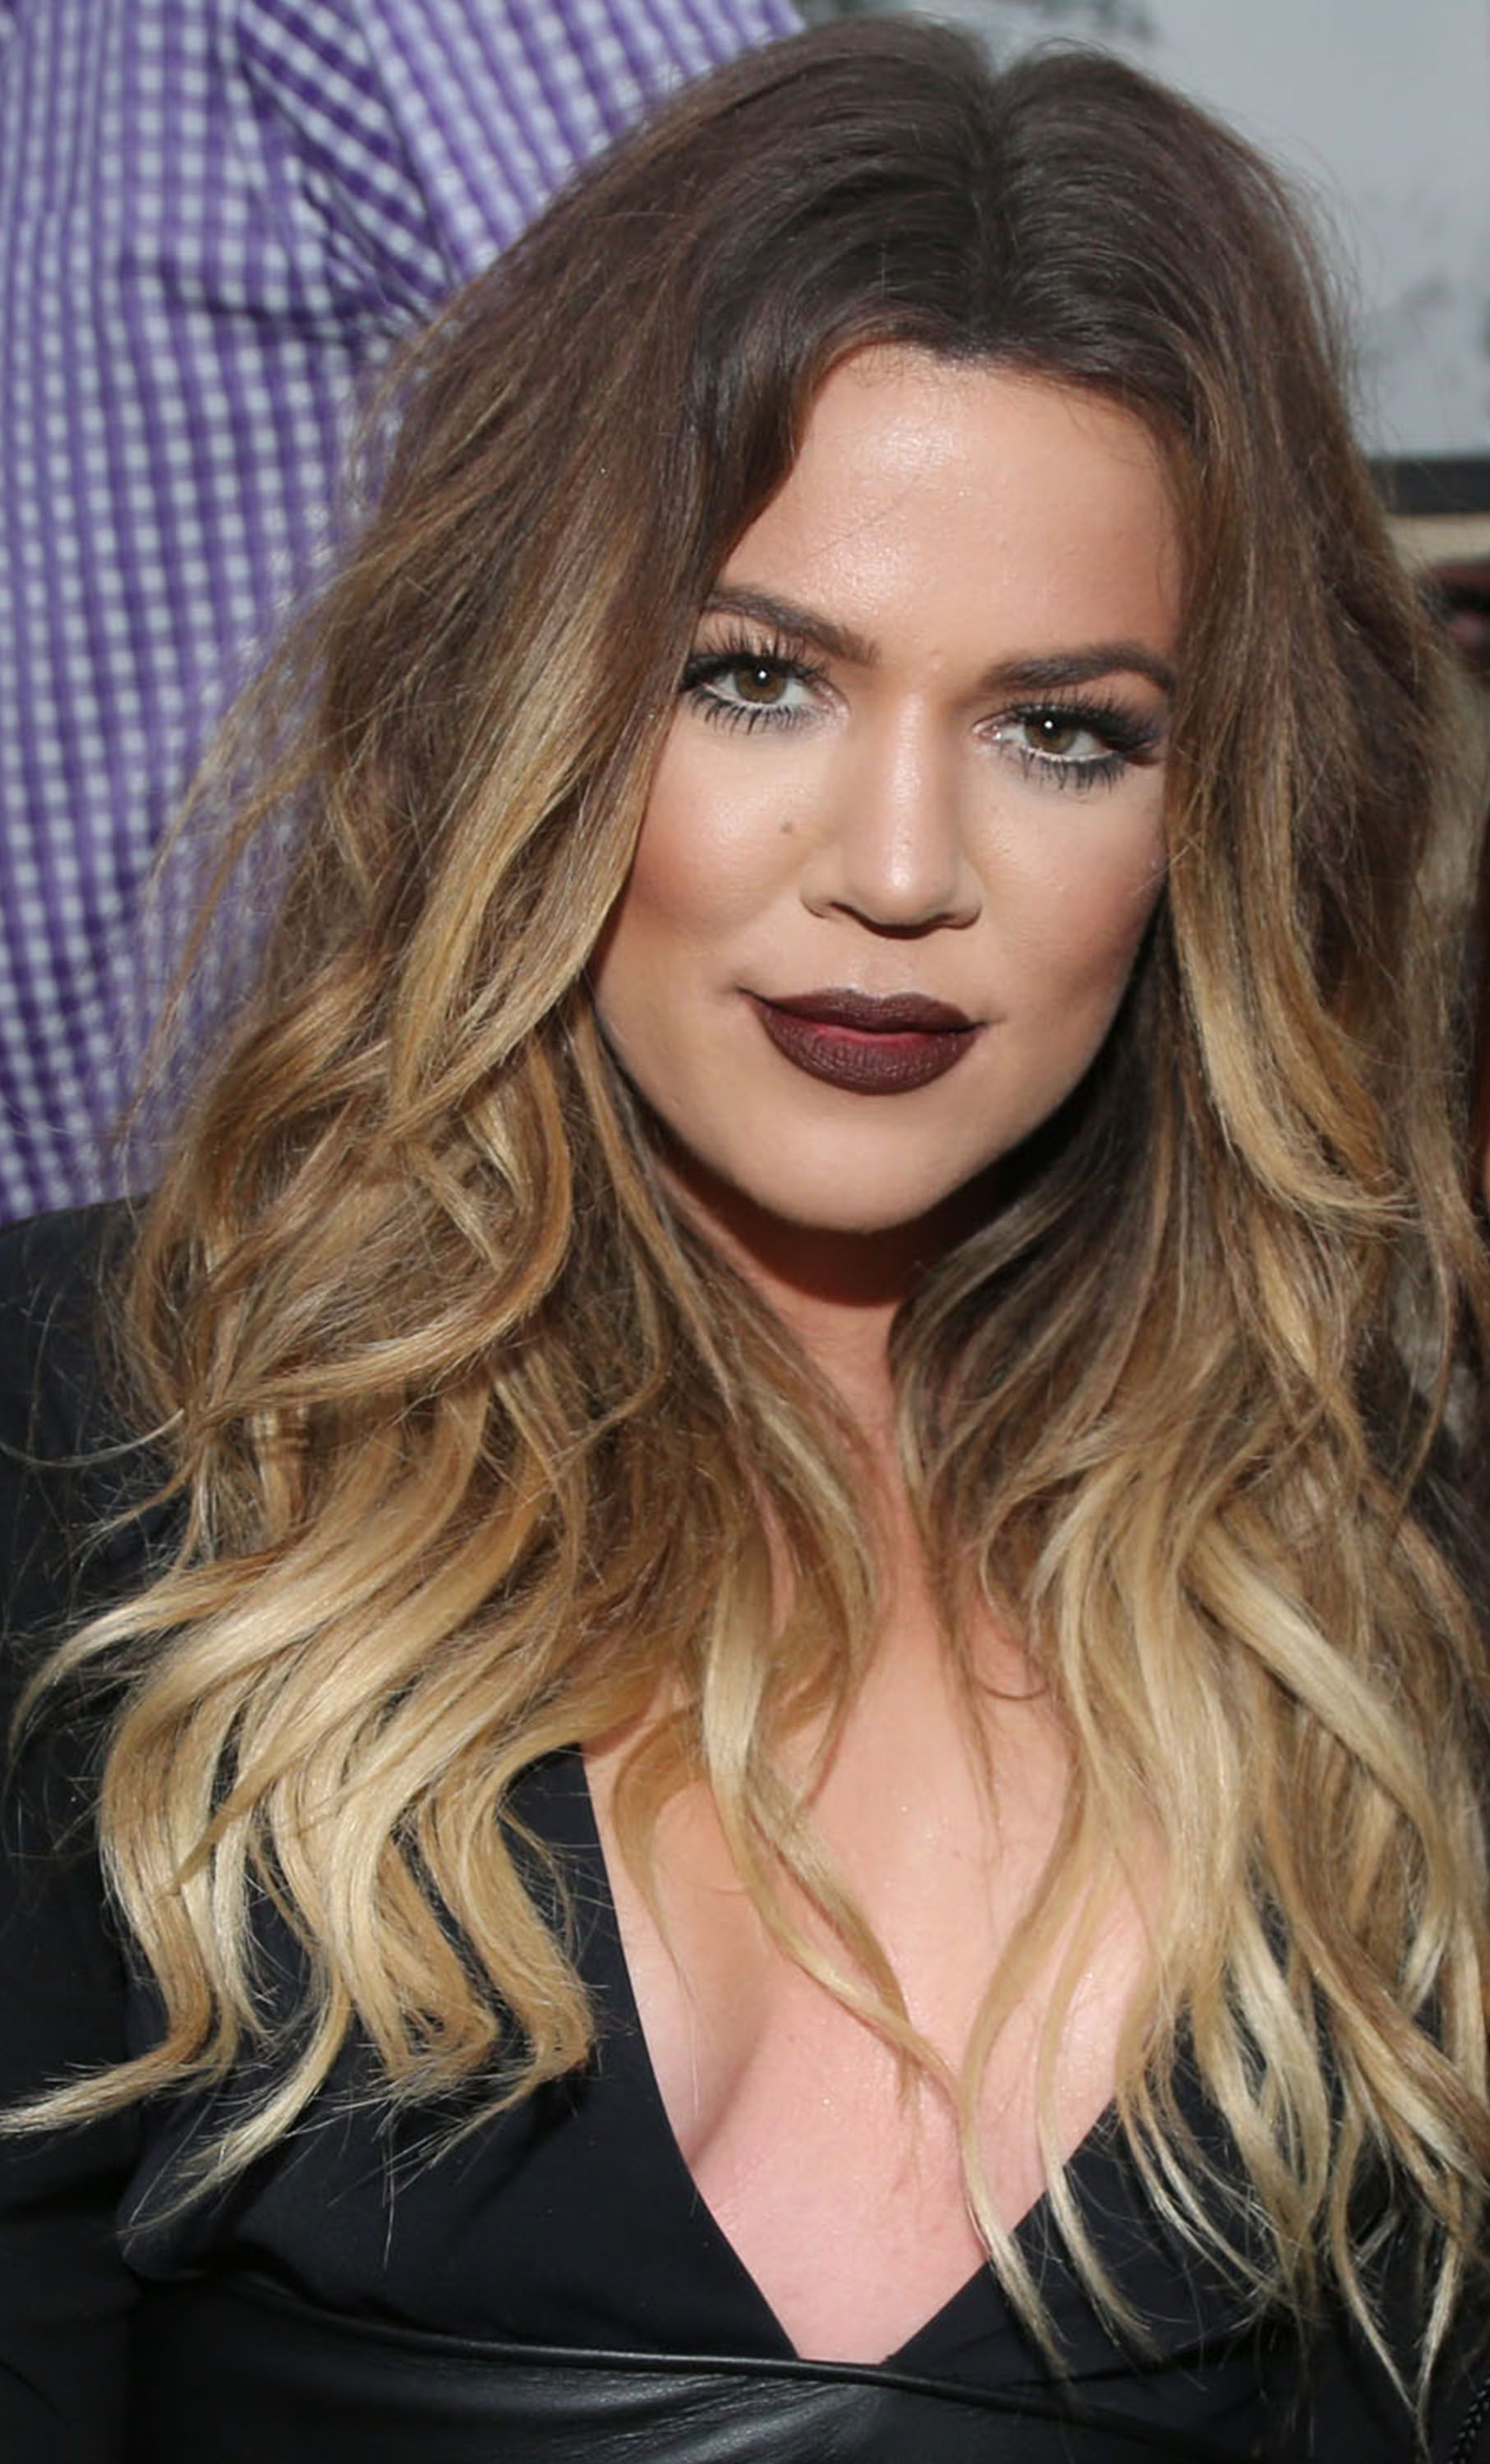 30 best hair highlights for 2017 every style and type of hair 30 best hair highlights for 2017 every style and type of hair highlights pmusecretfo Image collections